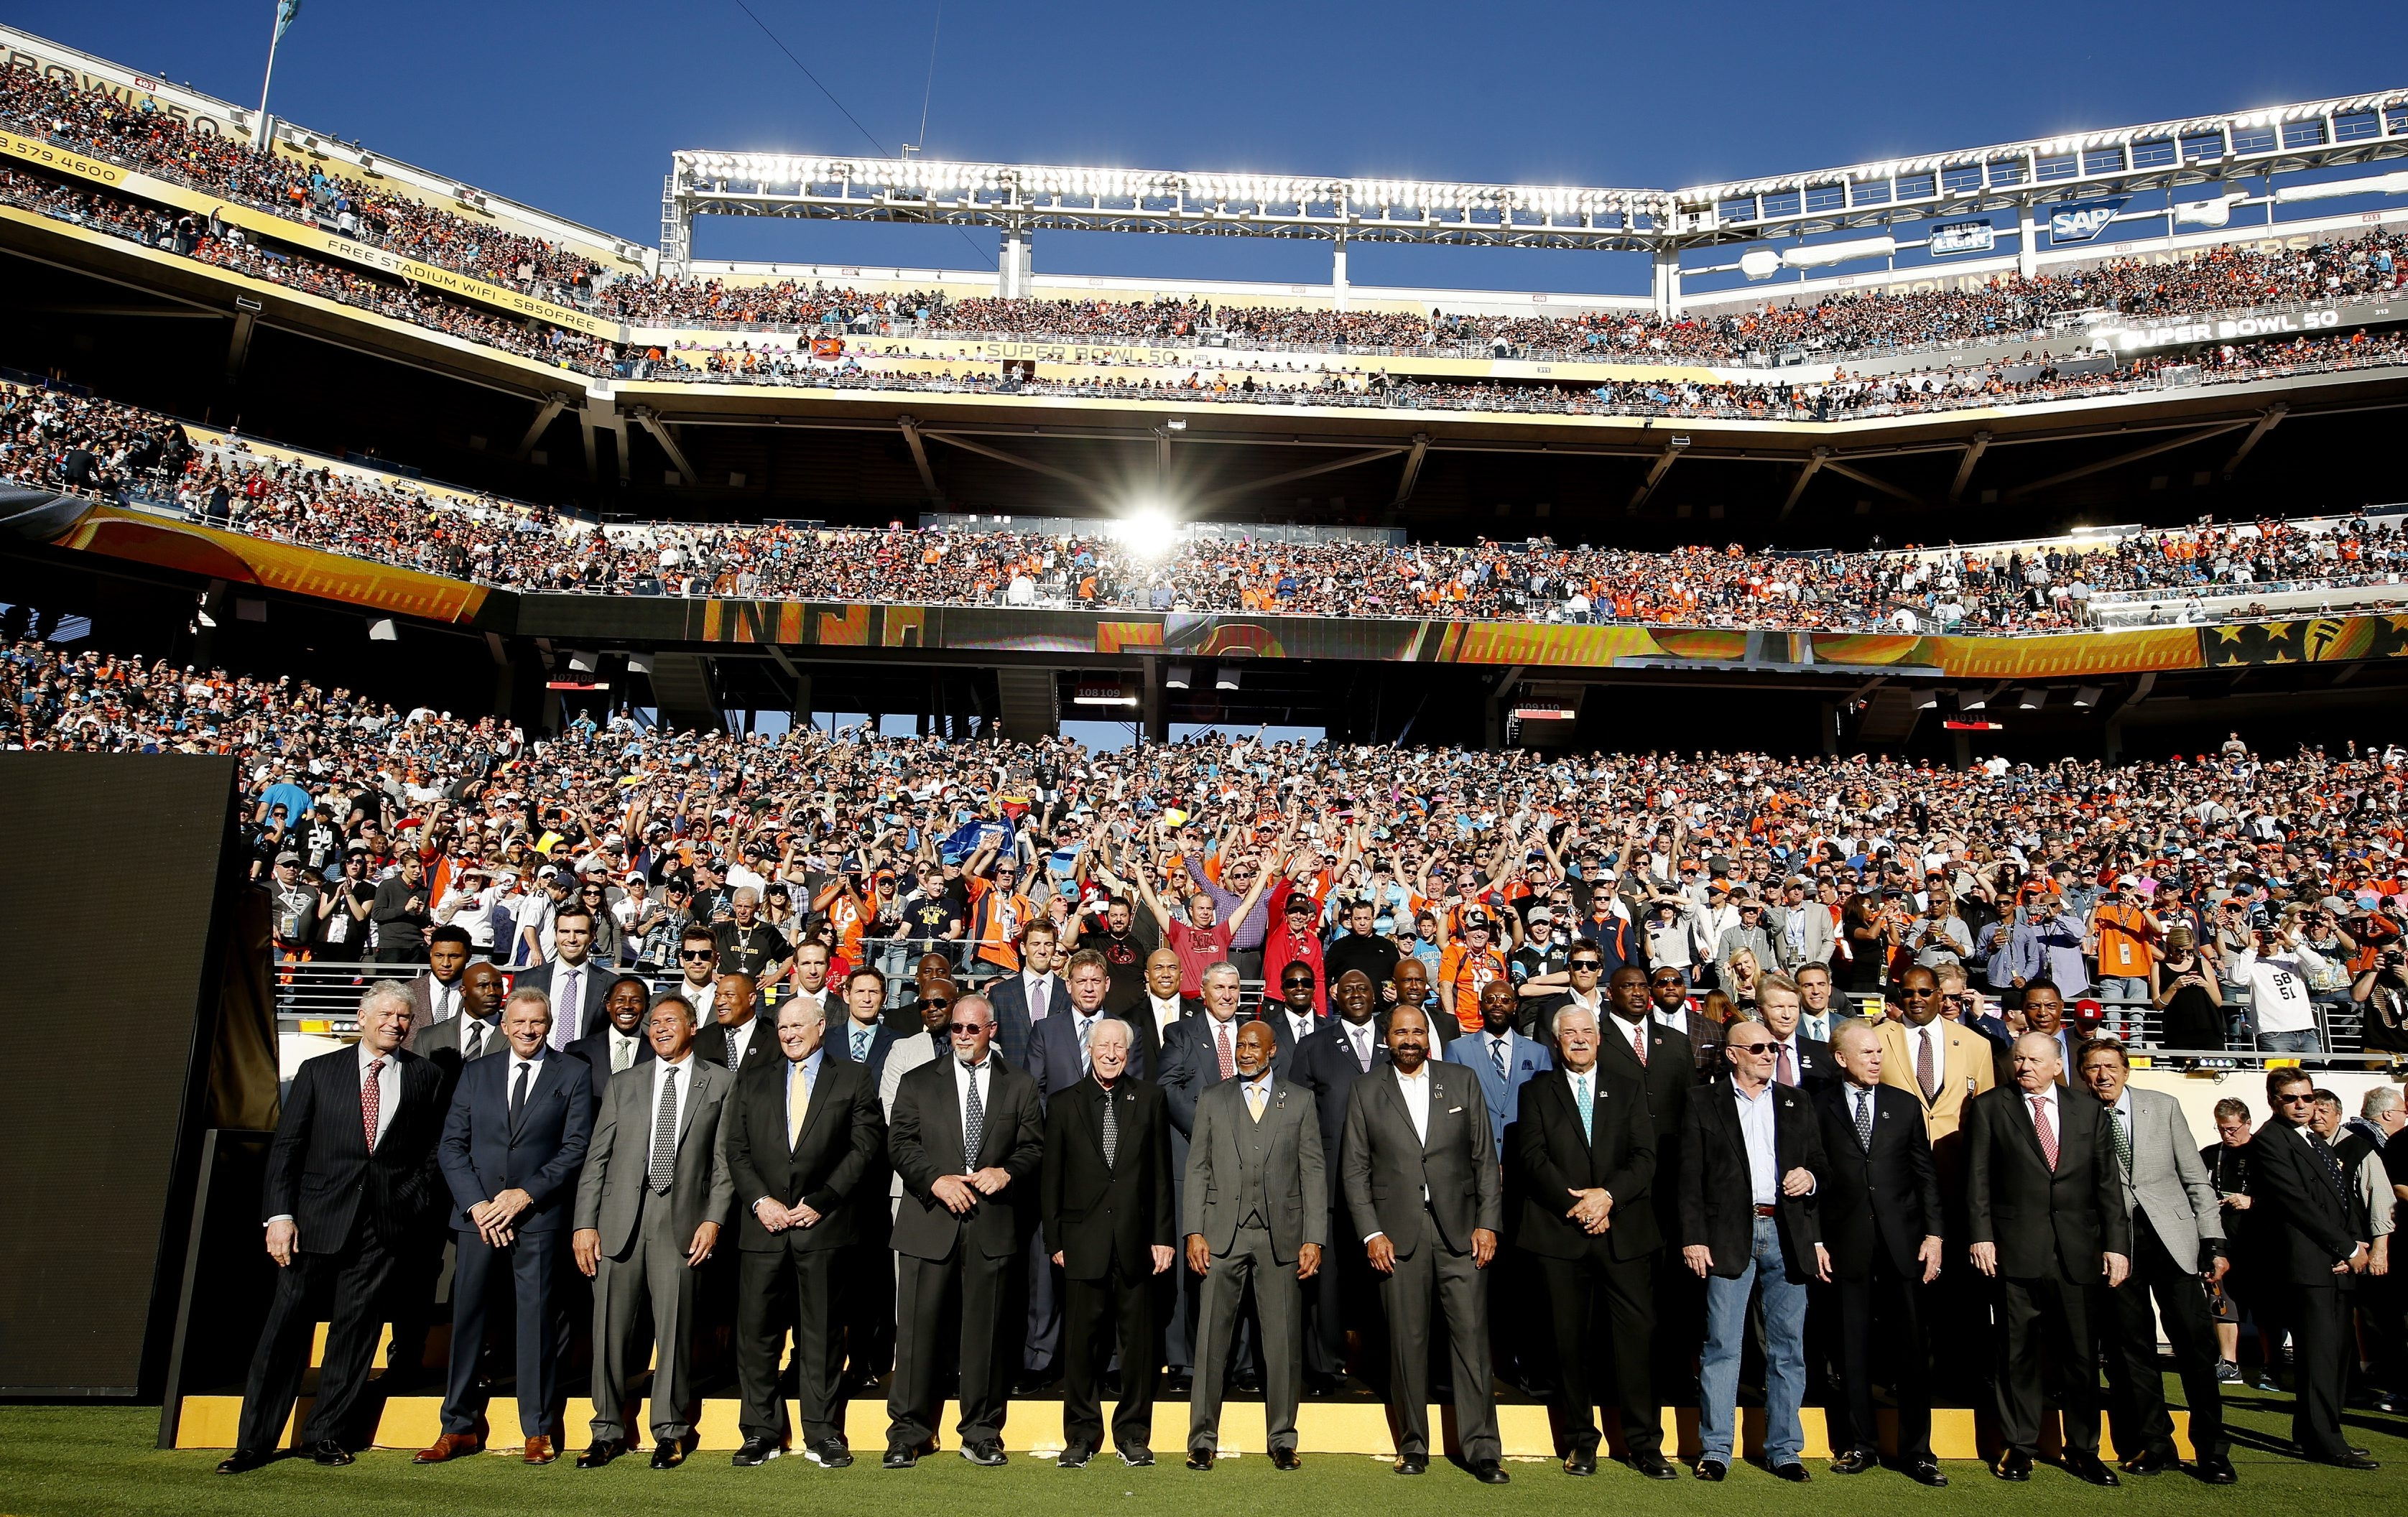 Past Super Bowl Most Valuable Players were introduced at Levi's Stadium prior to the start of Sunday's Super Bowl 50 in Santa Clara, Calif.